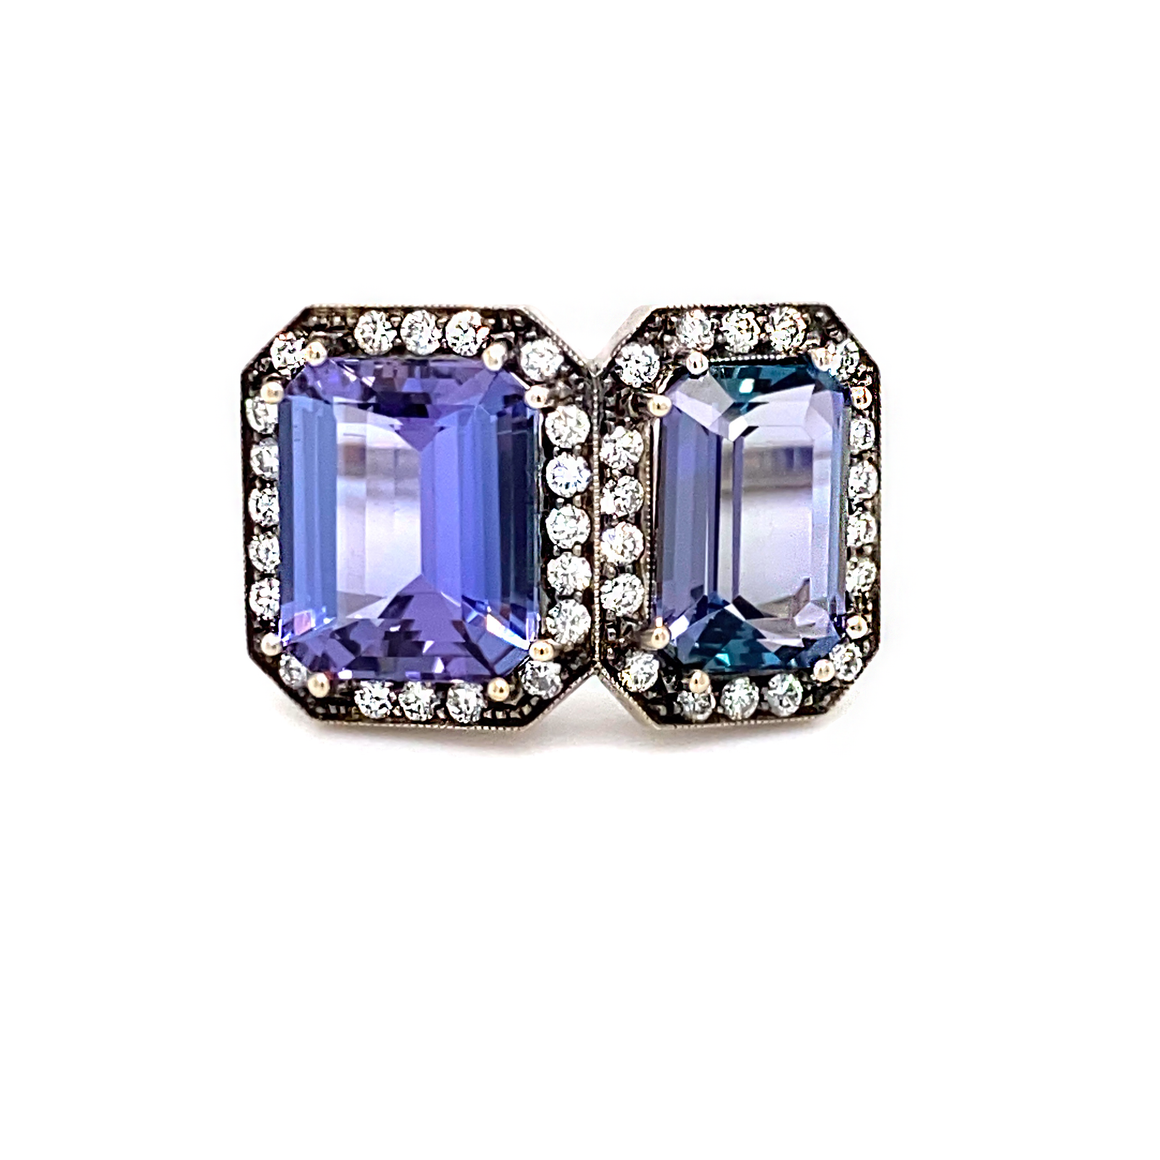 Double Tanzanite Ring - Lesley Ann Jewels